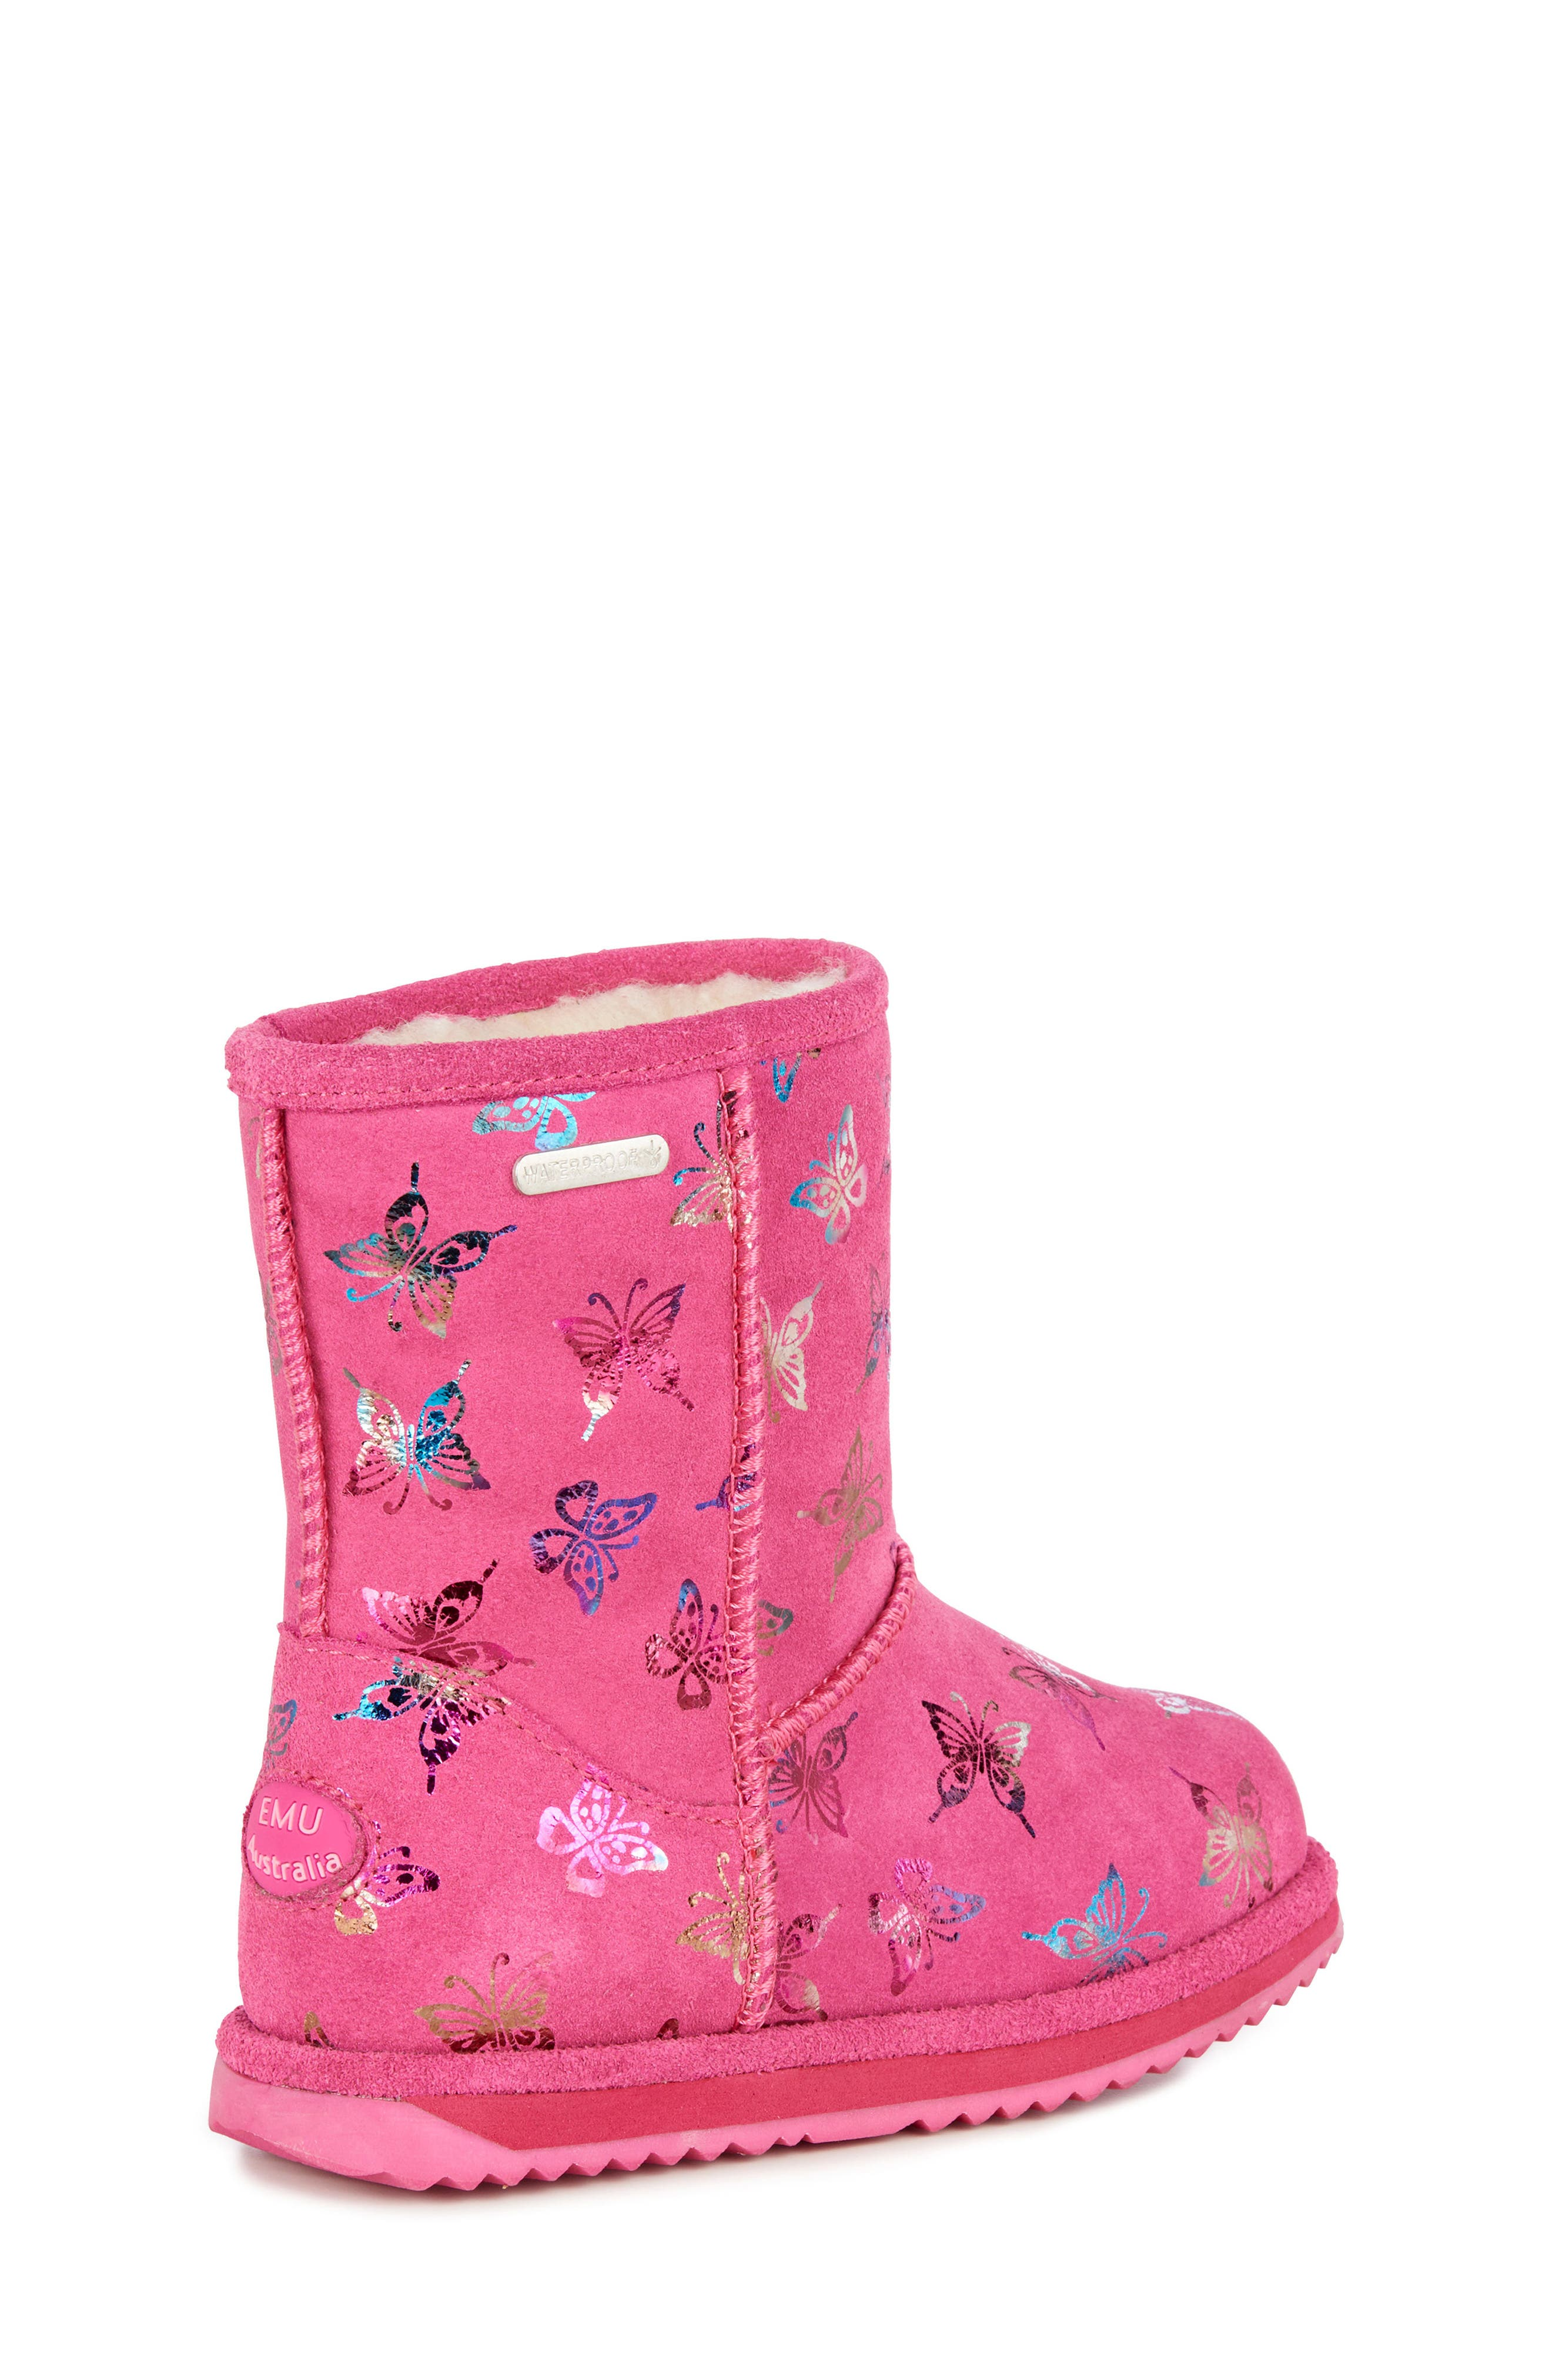 Animal Print Boots,                             Alternate thumbnail 9, color,                             HOT PINK